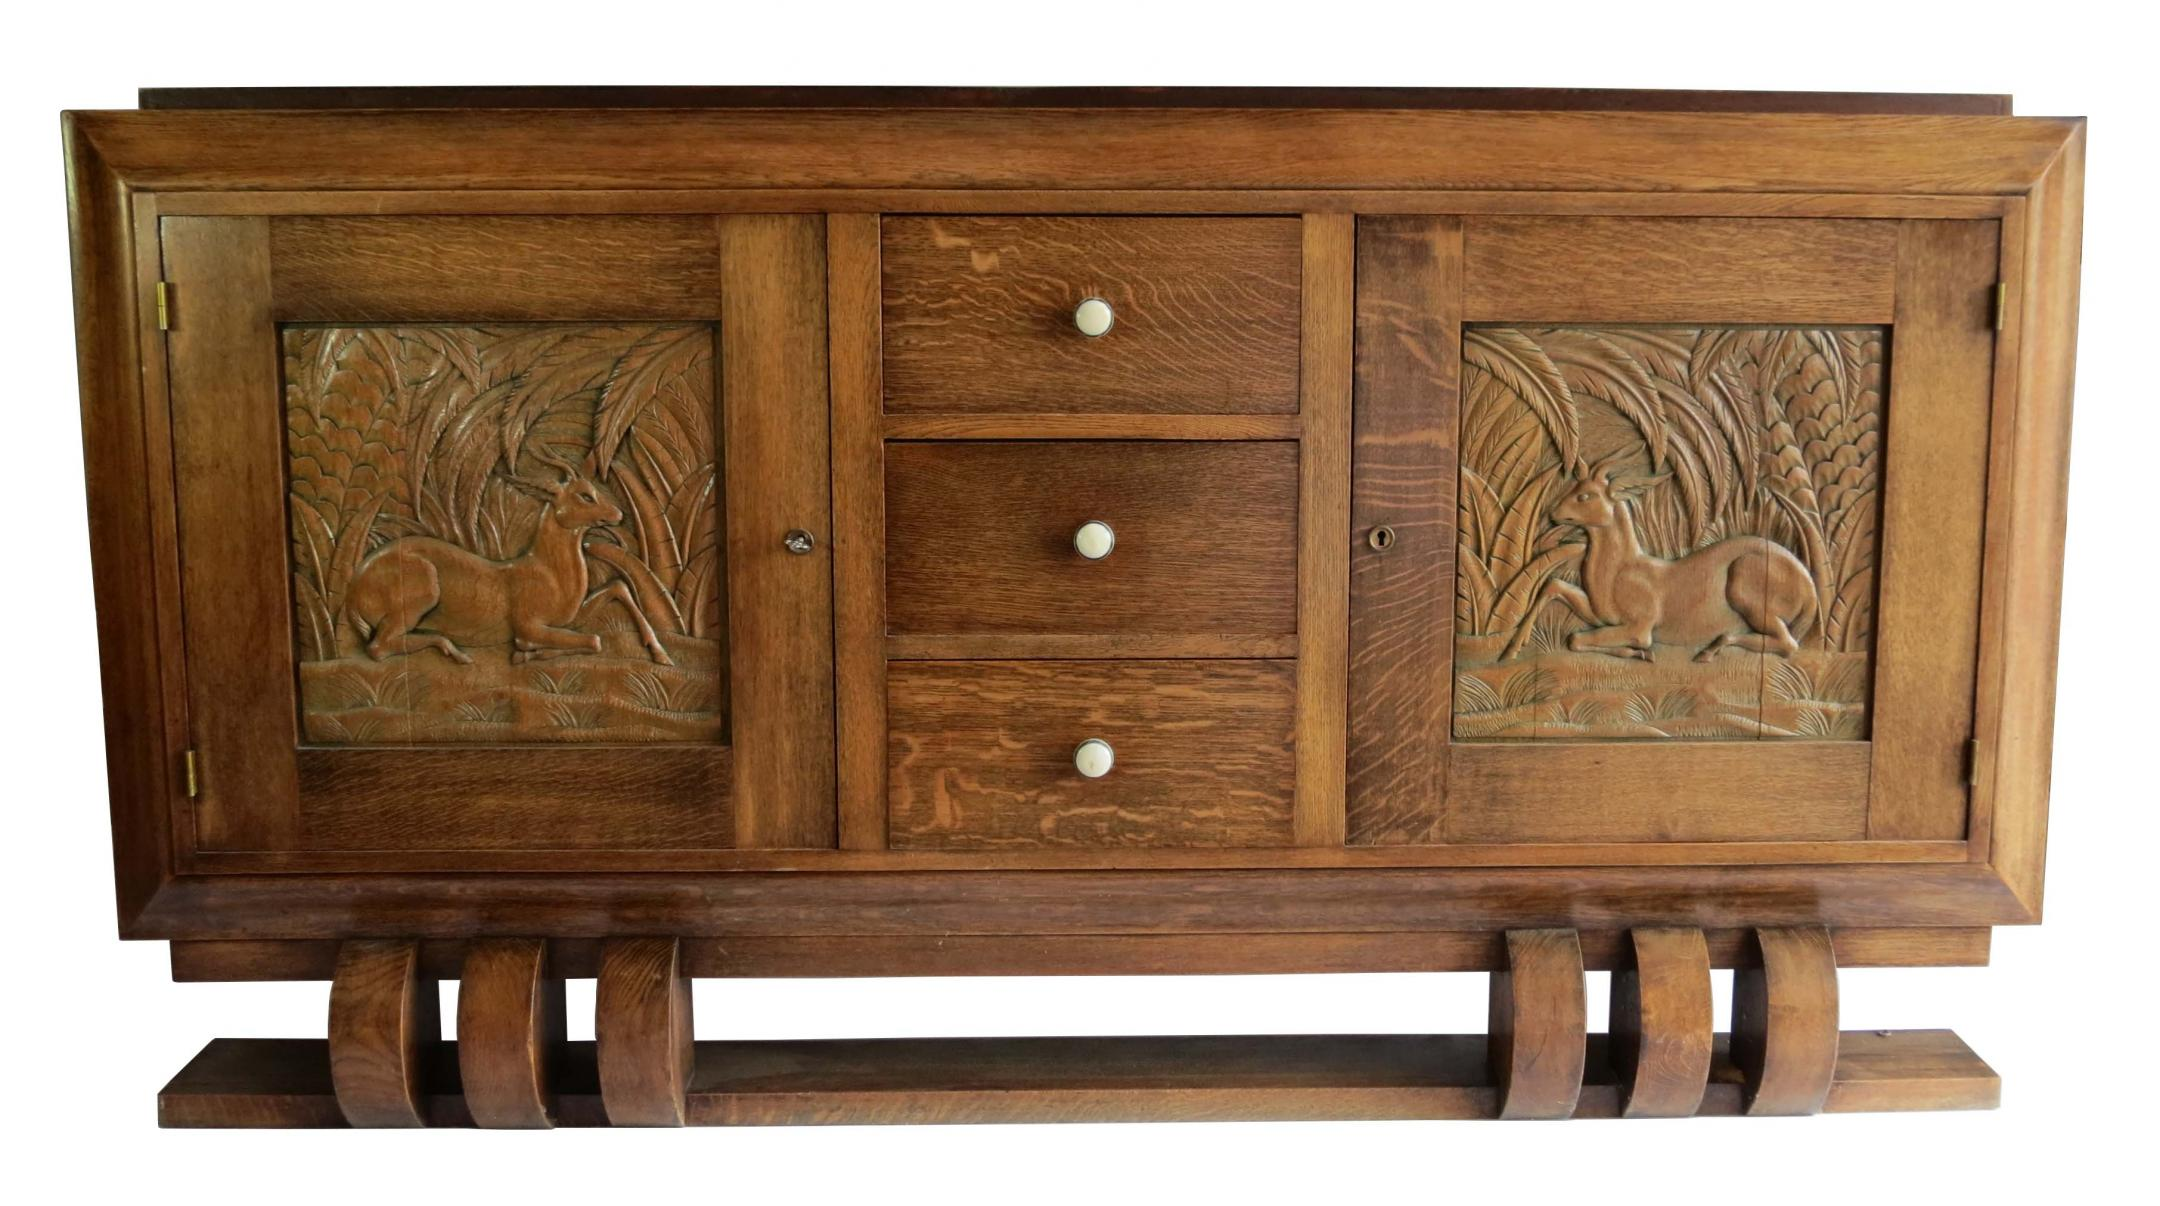 Dudouyt french art deco sideboard with carved biches